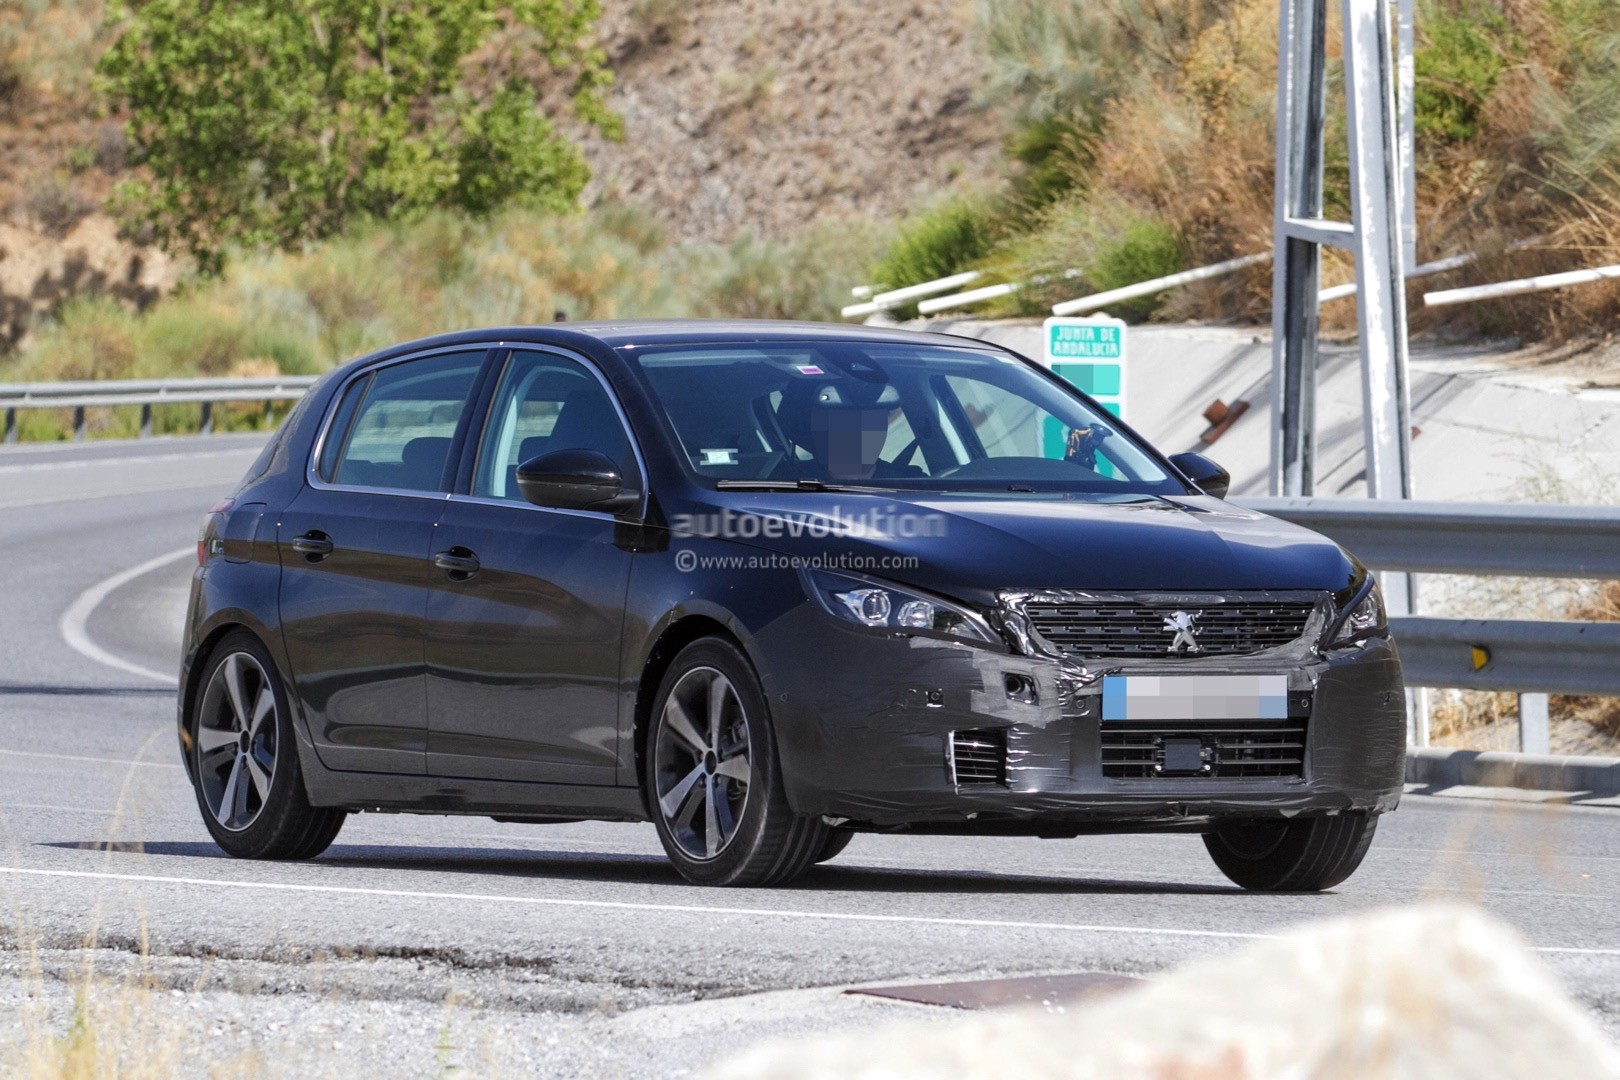 peugeot prepares to facelift 308 model lineup for 2017 autoevolution. Black Bedroom Furniture Sets. Home Design Ideas